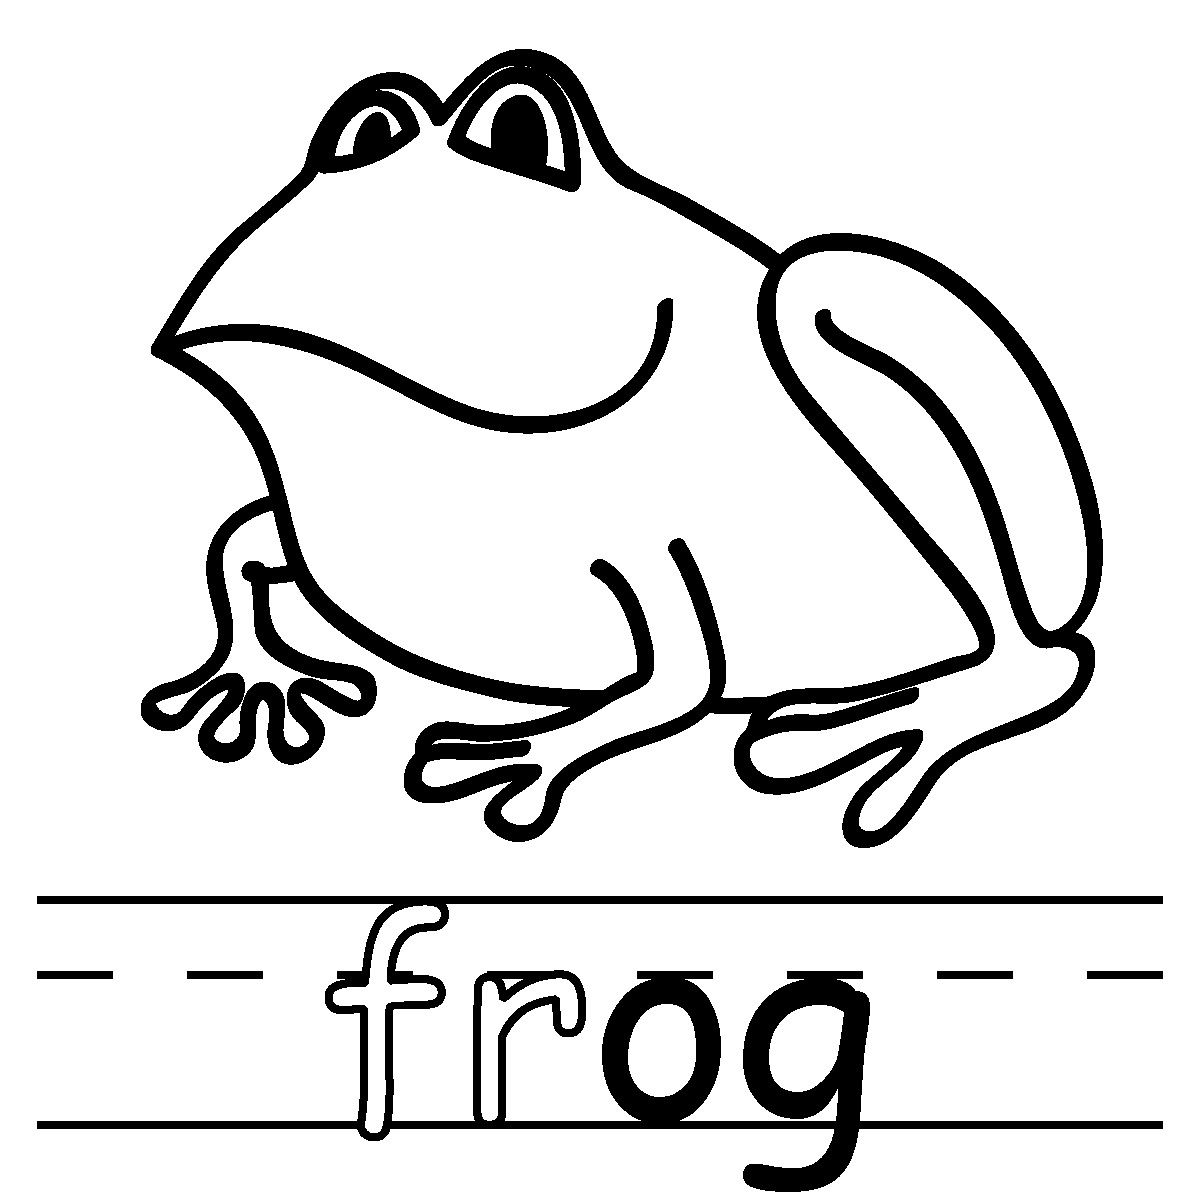 Google Image Result For Http Www Abcteach Com Free F Frogphonicsbnwlabeled Jp Phonics Phonics Printables Coloring Pages